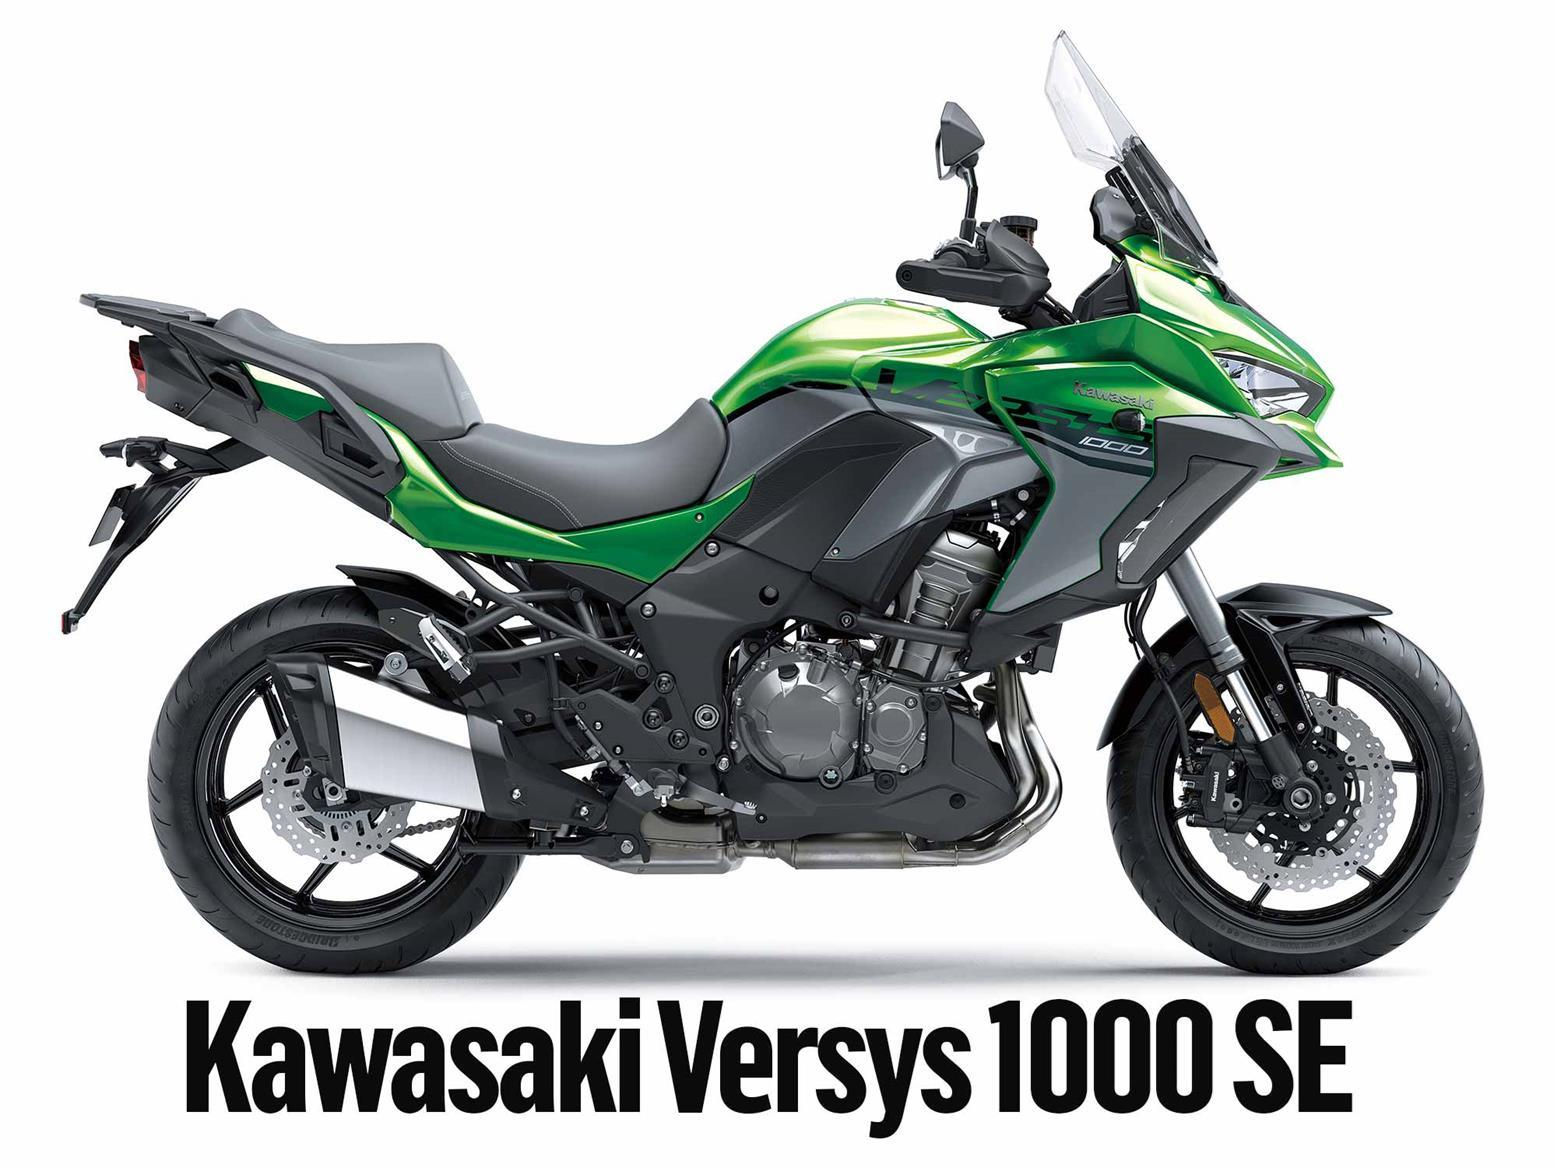 Read MCN's detailed Kawasaki Versys 1000 SE long-term test here